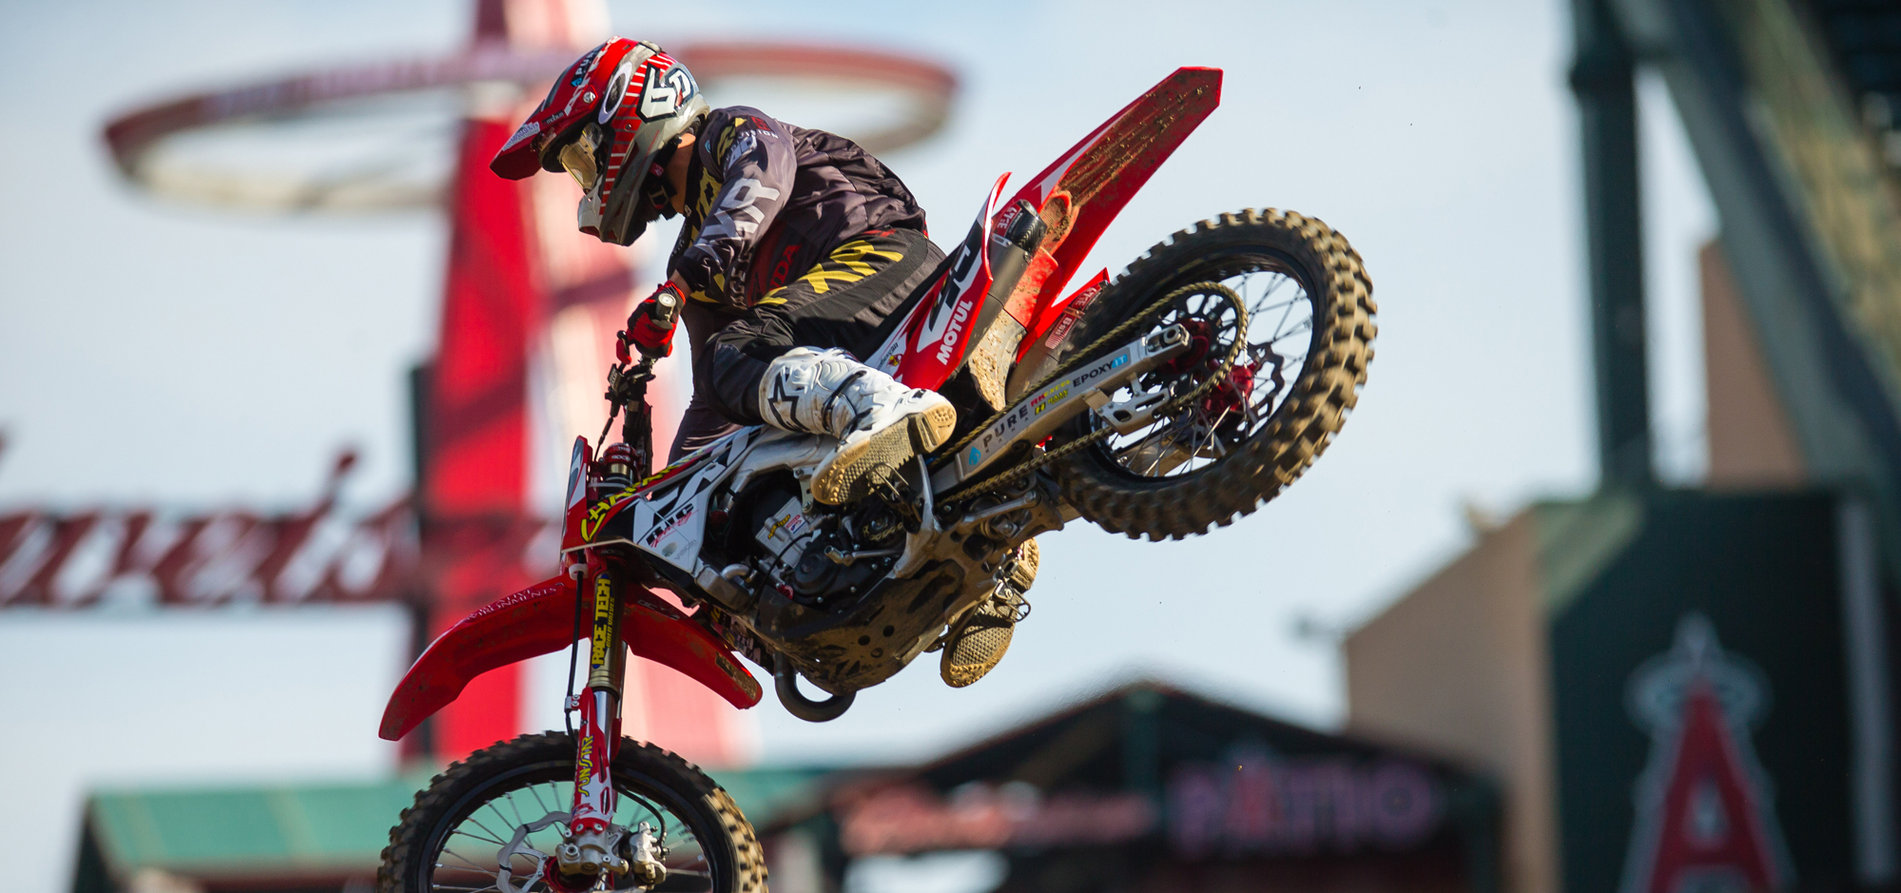 Privateers_SX20_A2_Kardy_1038.jpg